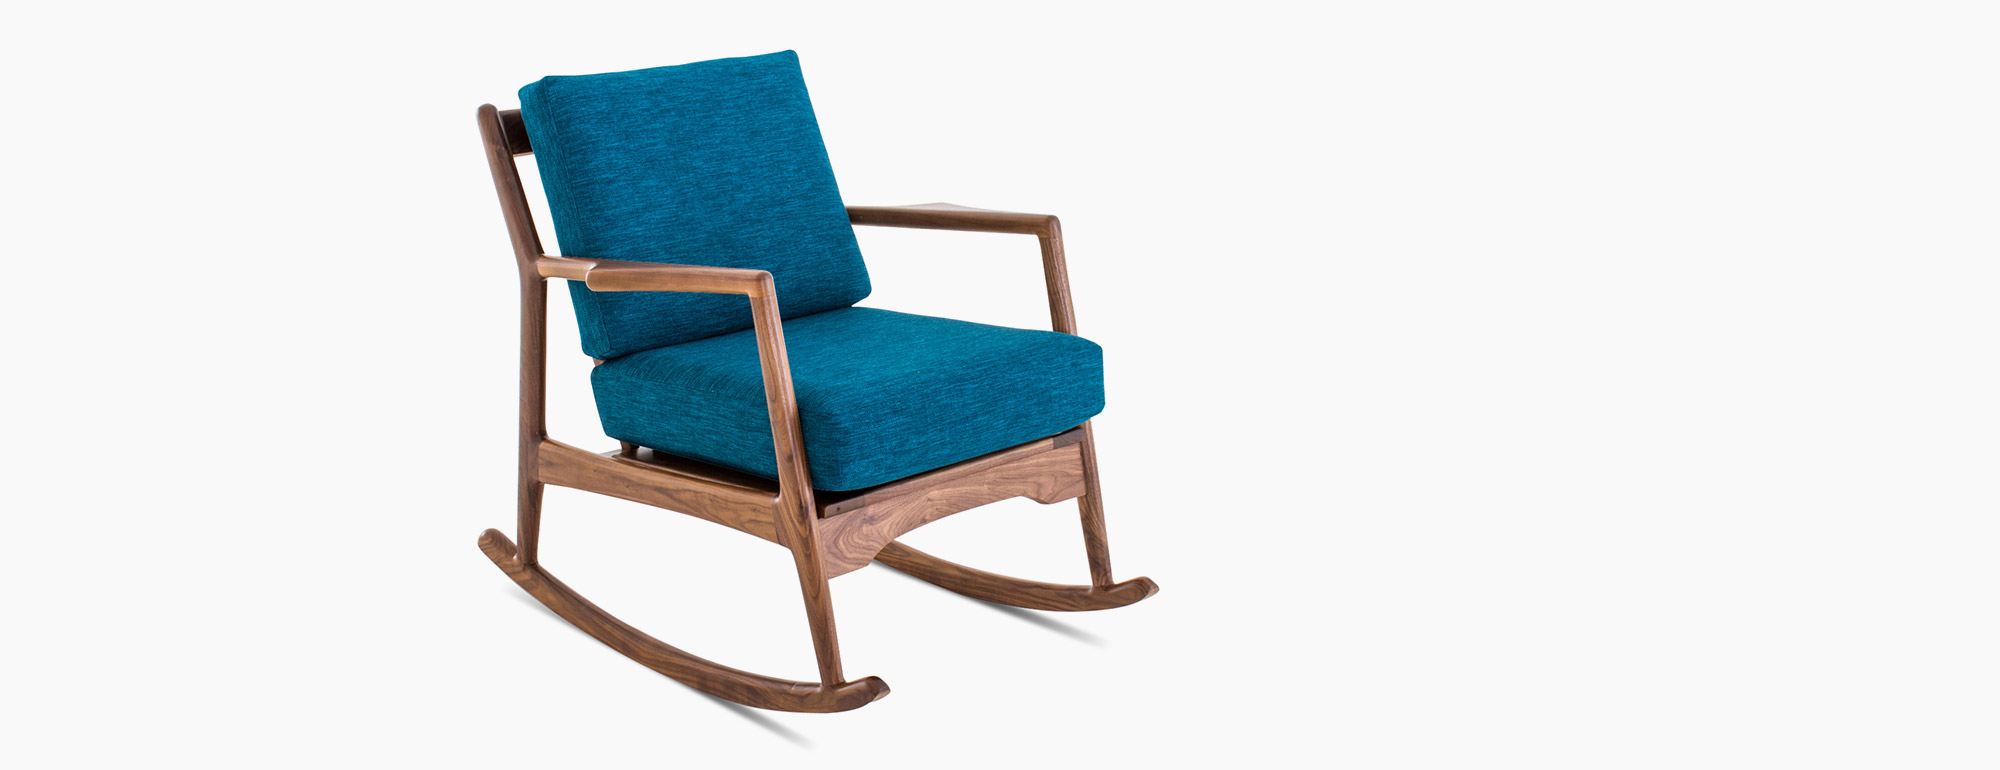 Teal Rocking Chair Collins Rocking Chair Joybird